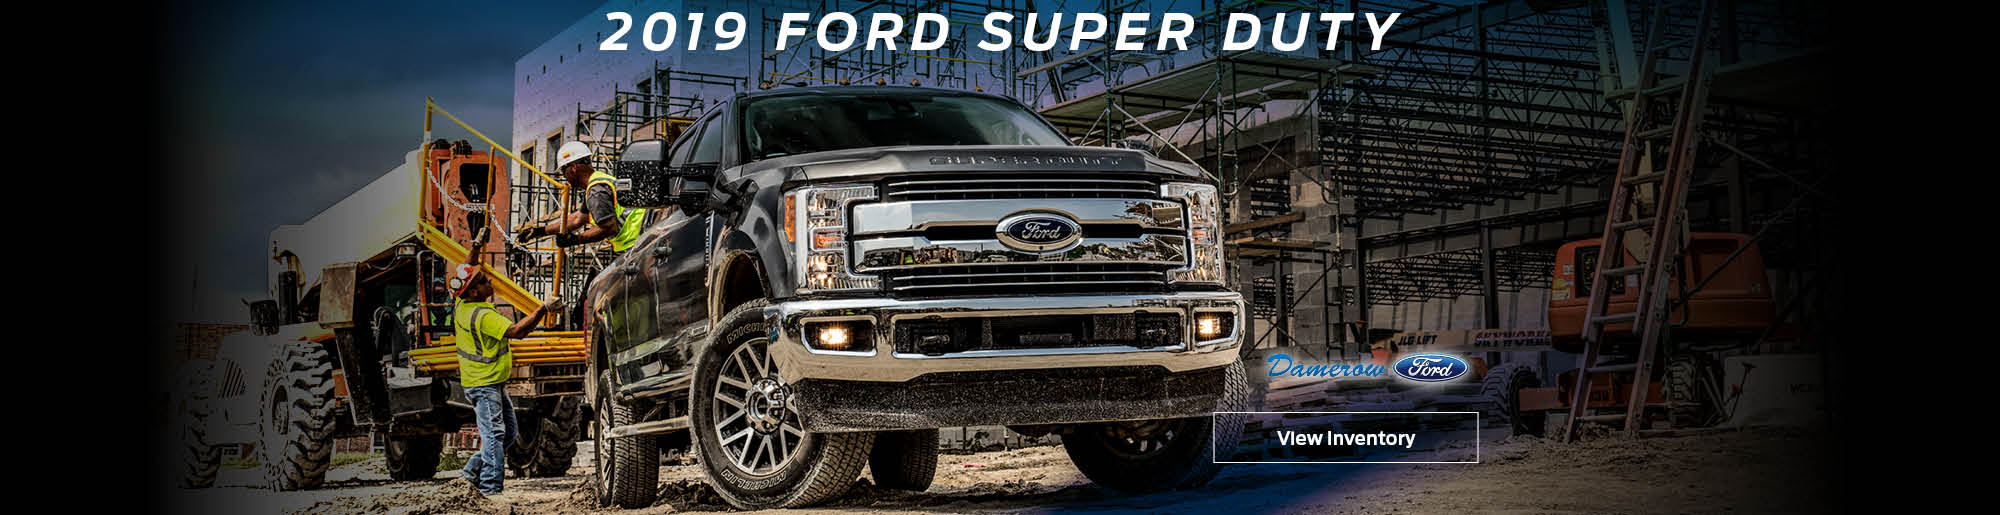 Beaverton Car Dealerships >> New Ford & Used Car Dealer in Beaverton, OR - Damerow Ford - Largest Ford Dealer in the Northwest